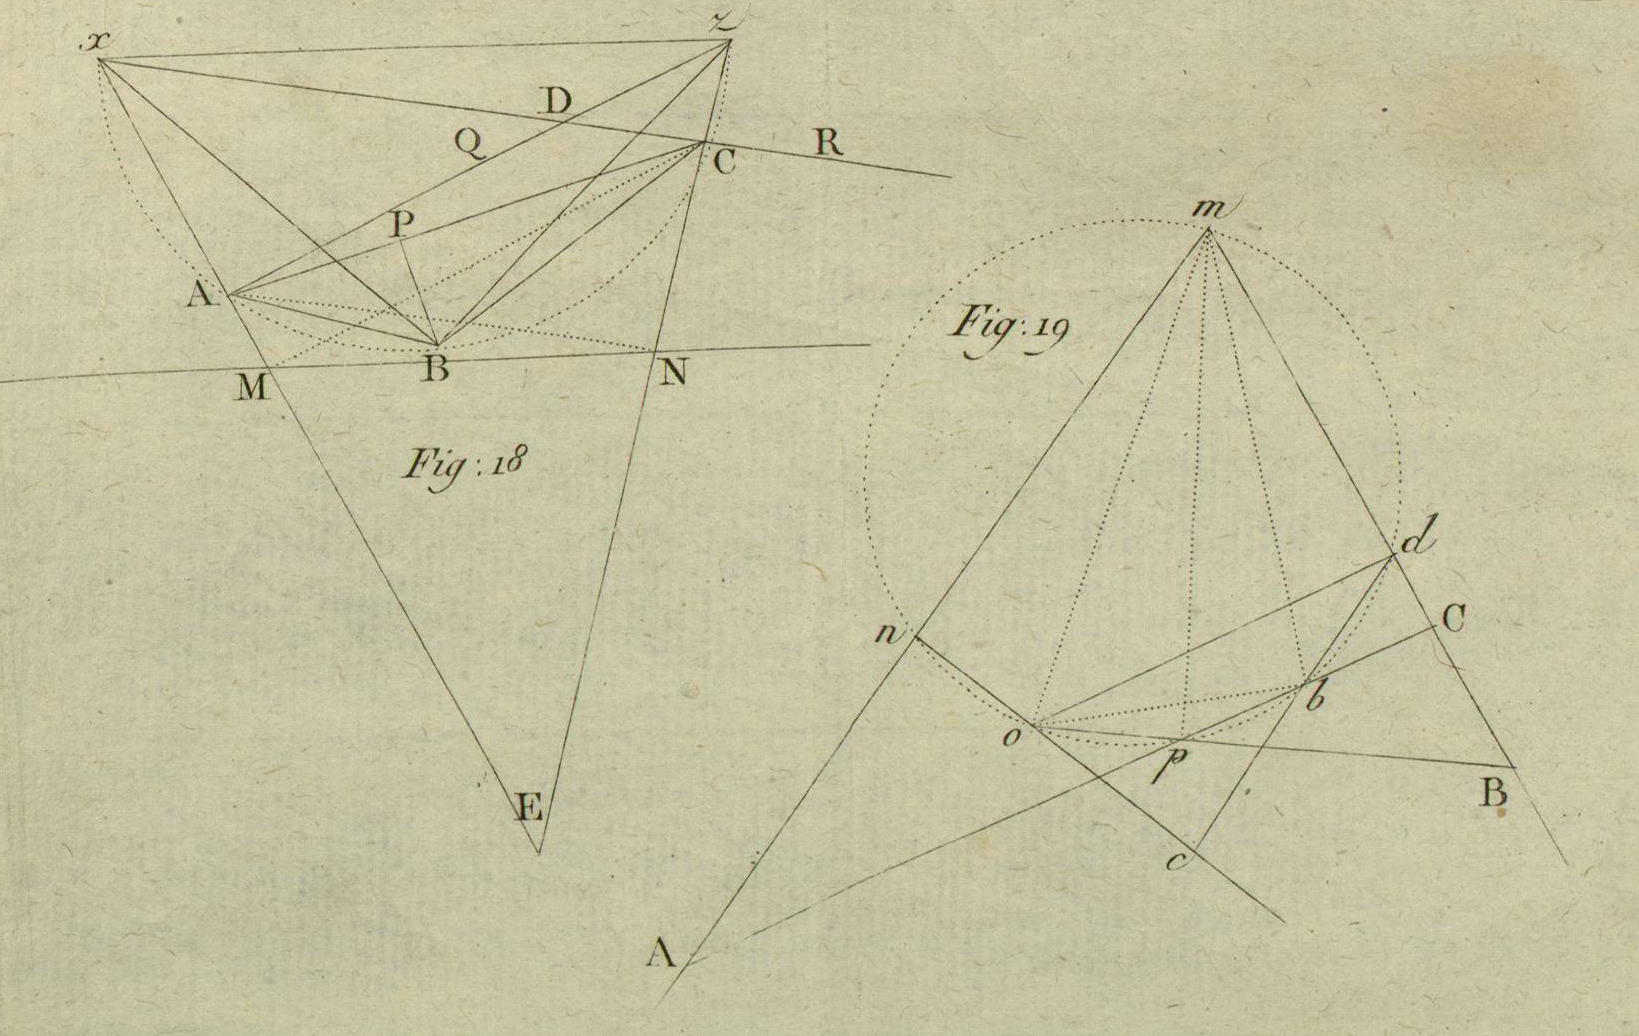 from Servois' geometry text